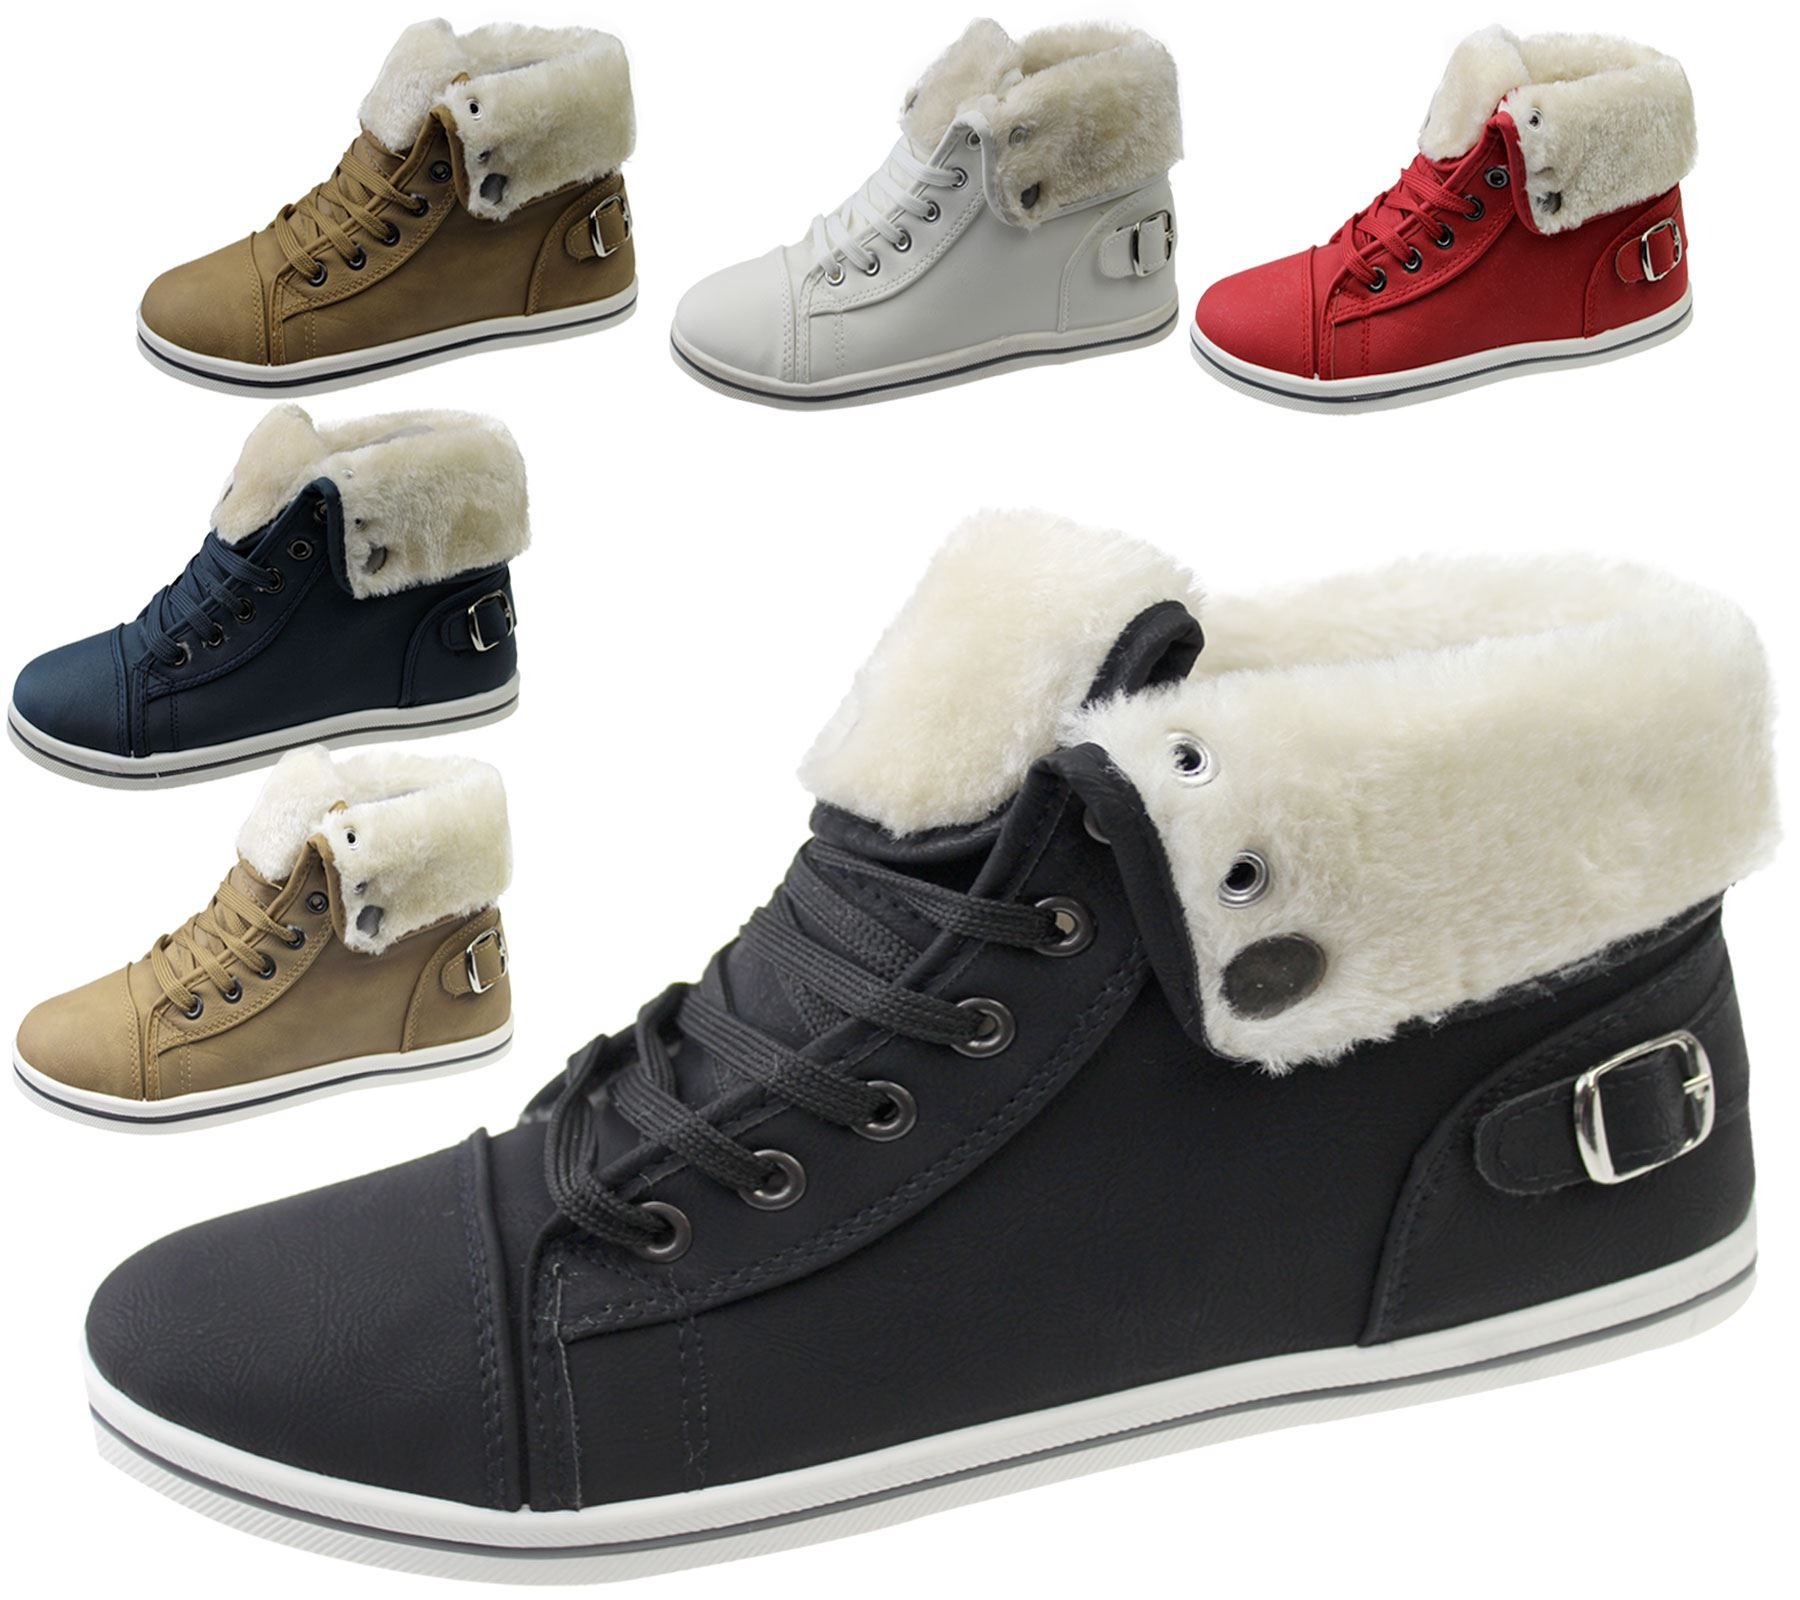 Girls-Boots-Womens-Warm-Lined-High-Top-Ankle-Trainer-Ladies-Winter-Shoes-Size miniatura 82